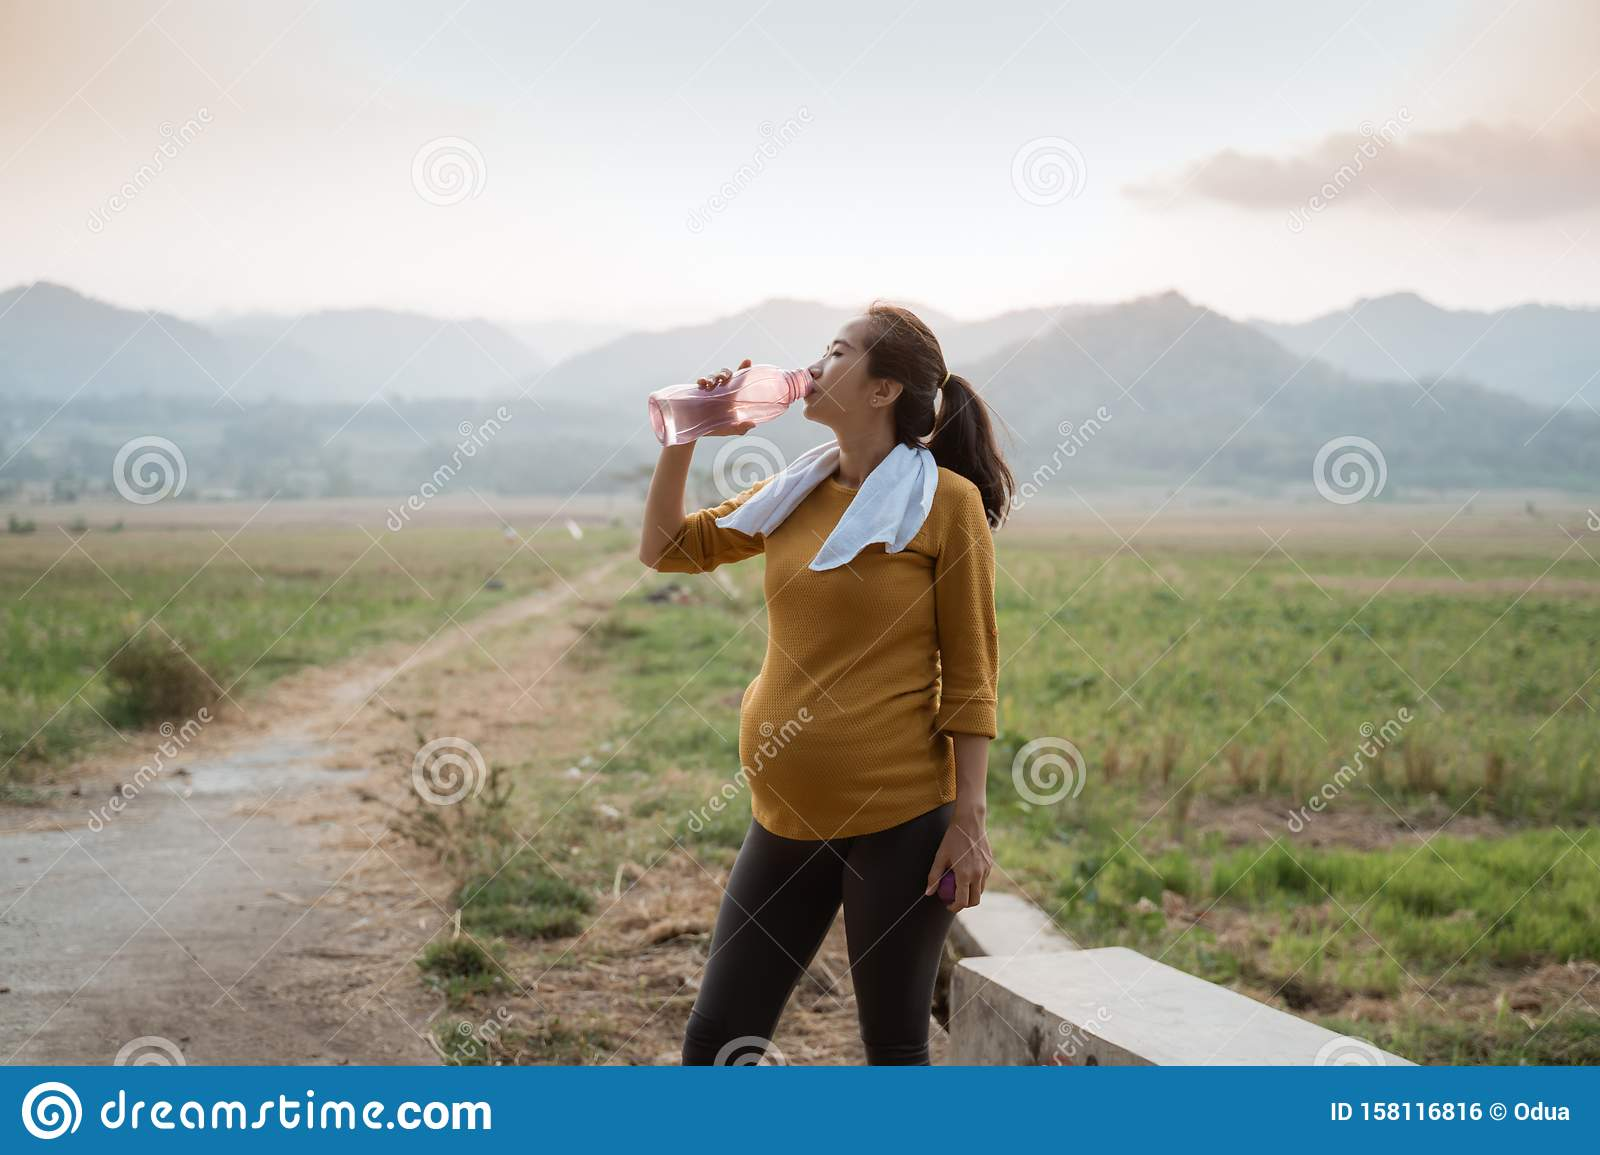 Pregnant Woman After Workout Drinking A Bottle Of Water Stock